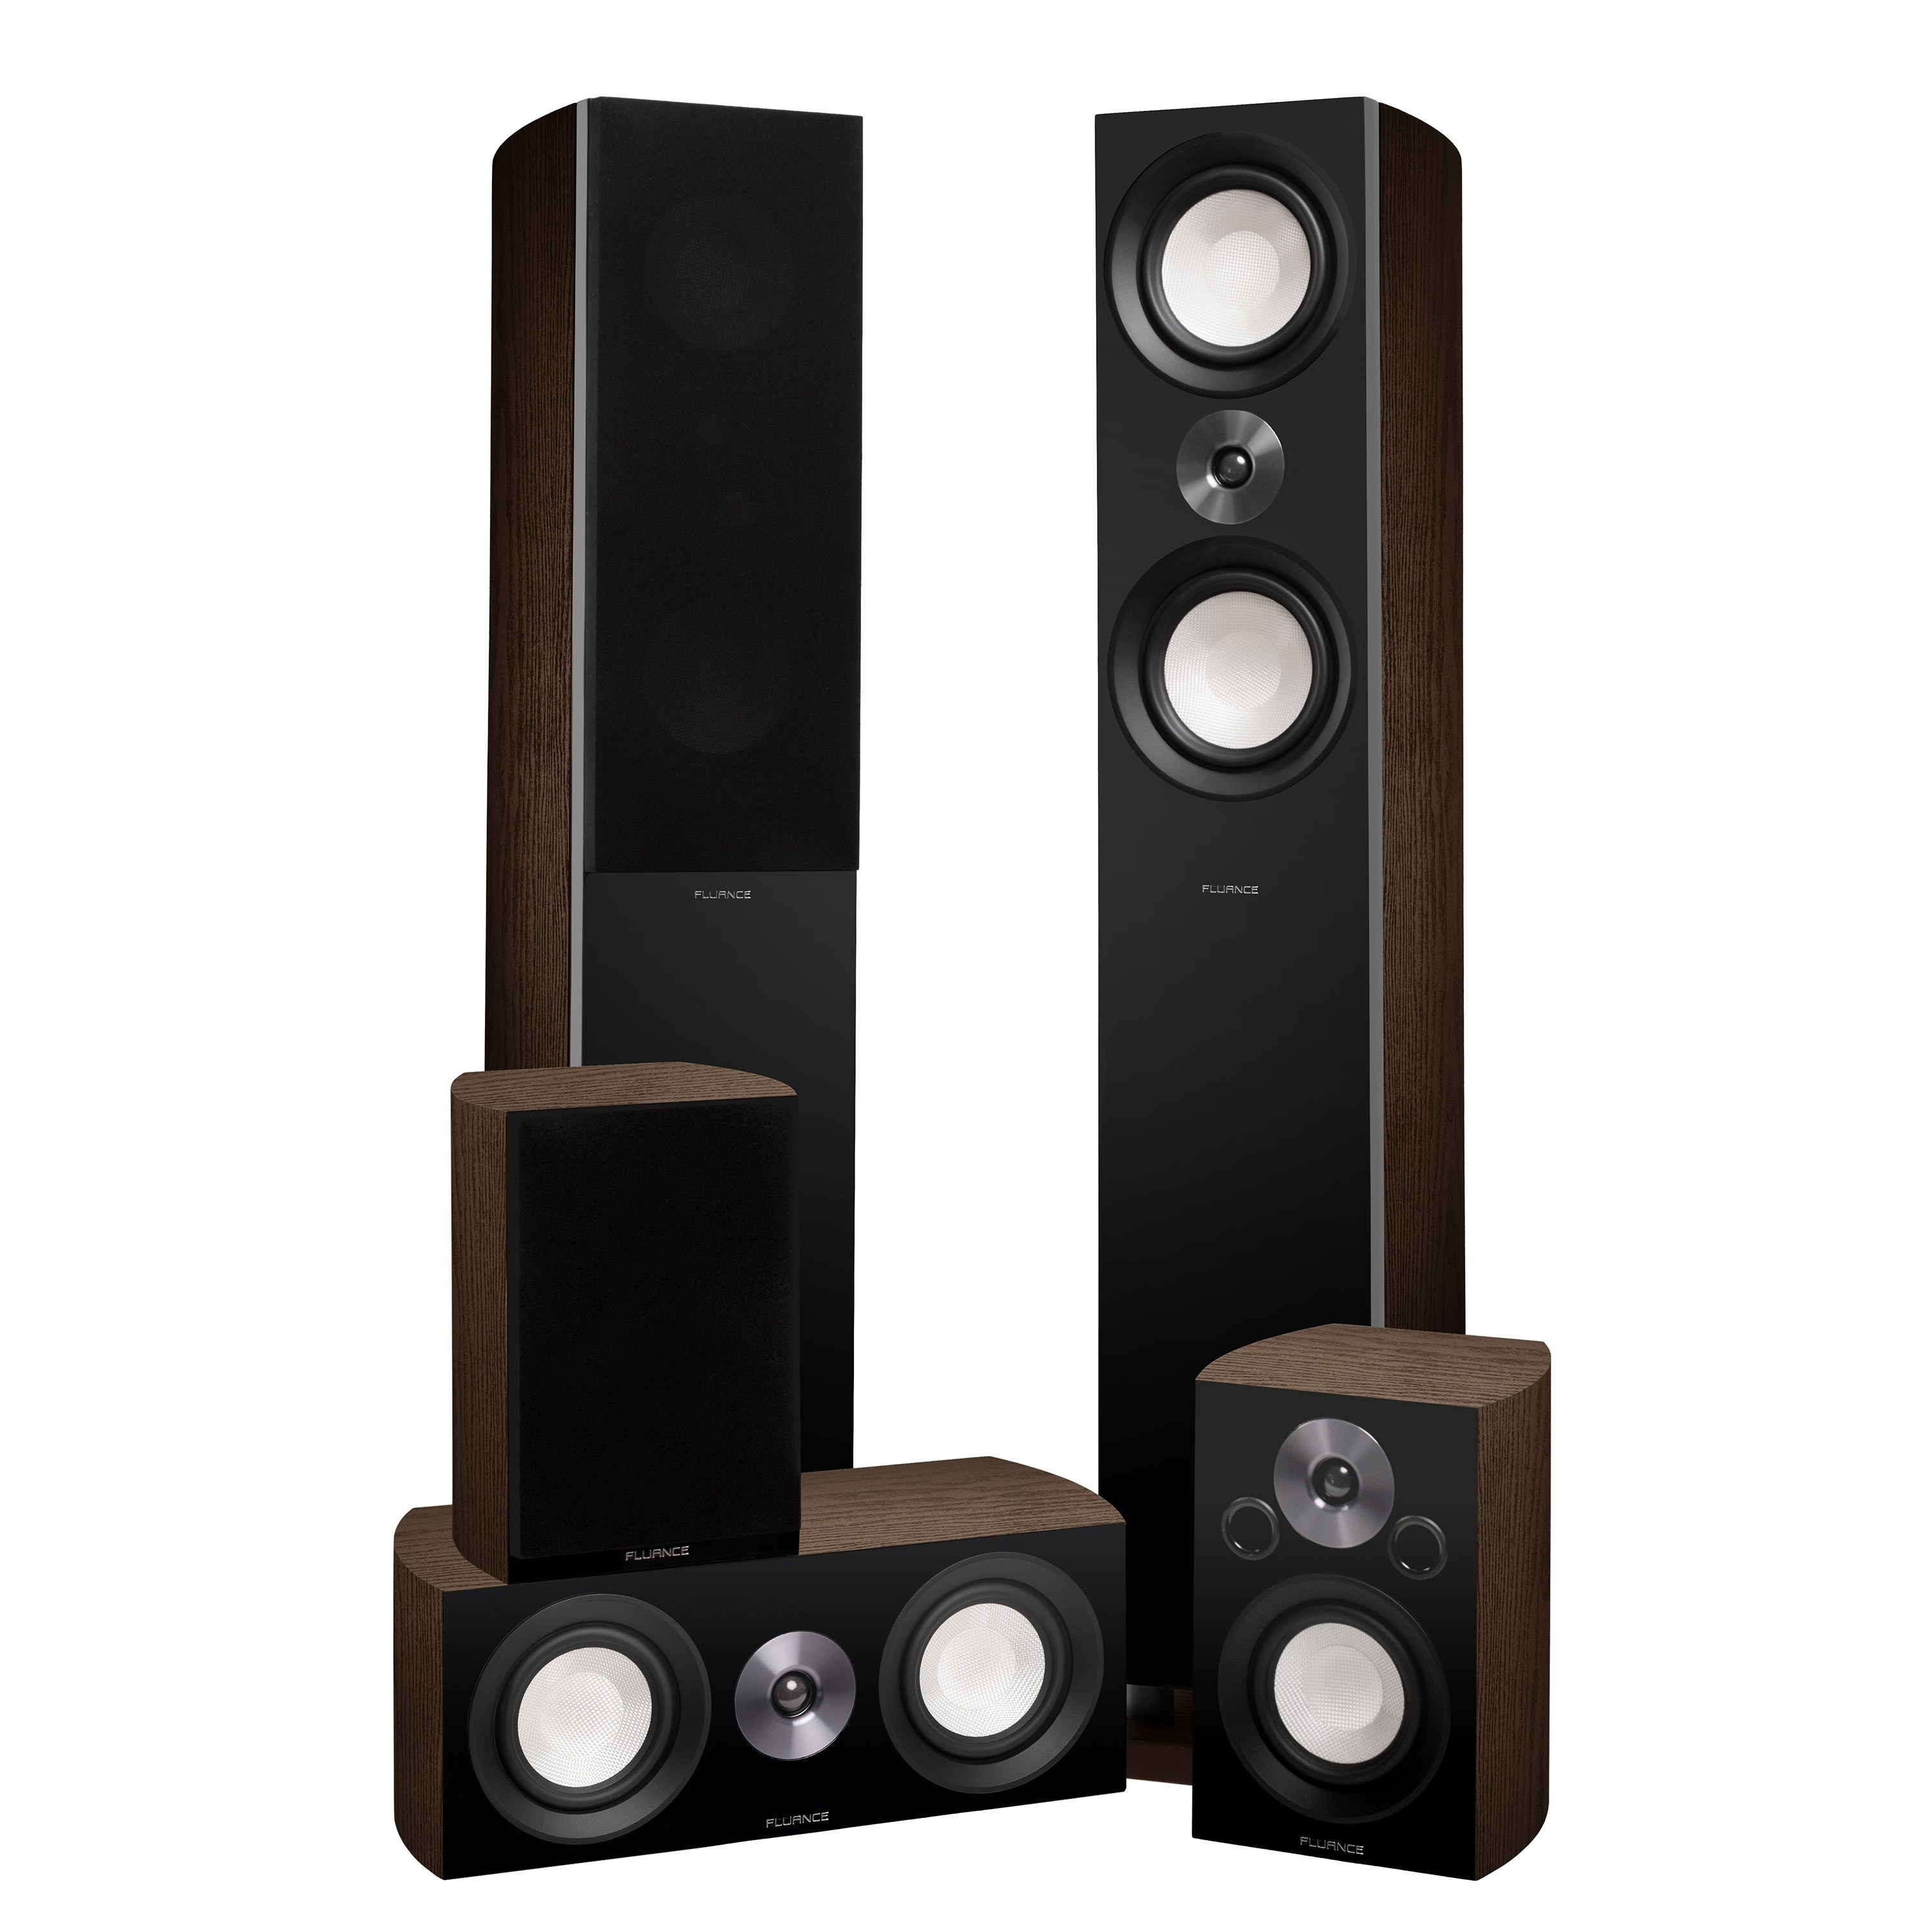 XL8HTBW Reference Series Home Theater Surround Sound Speakers